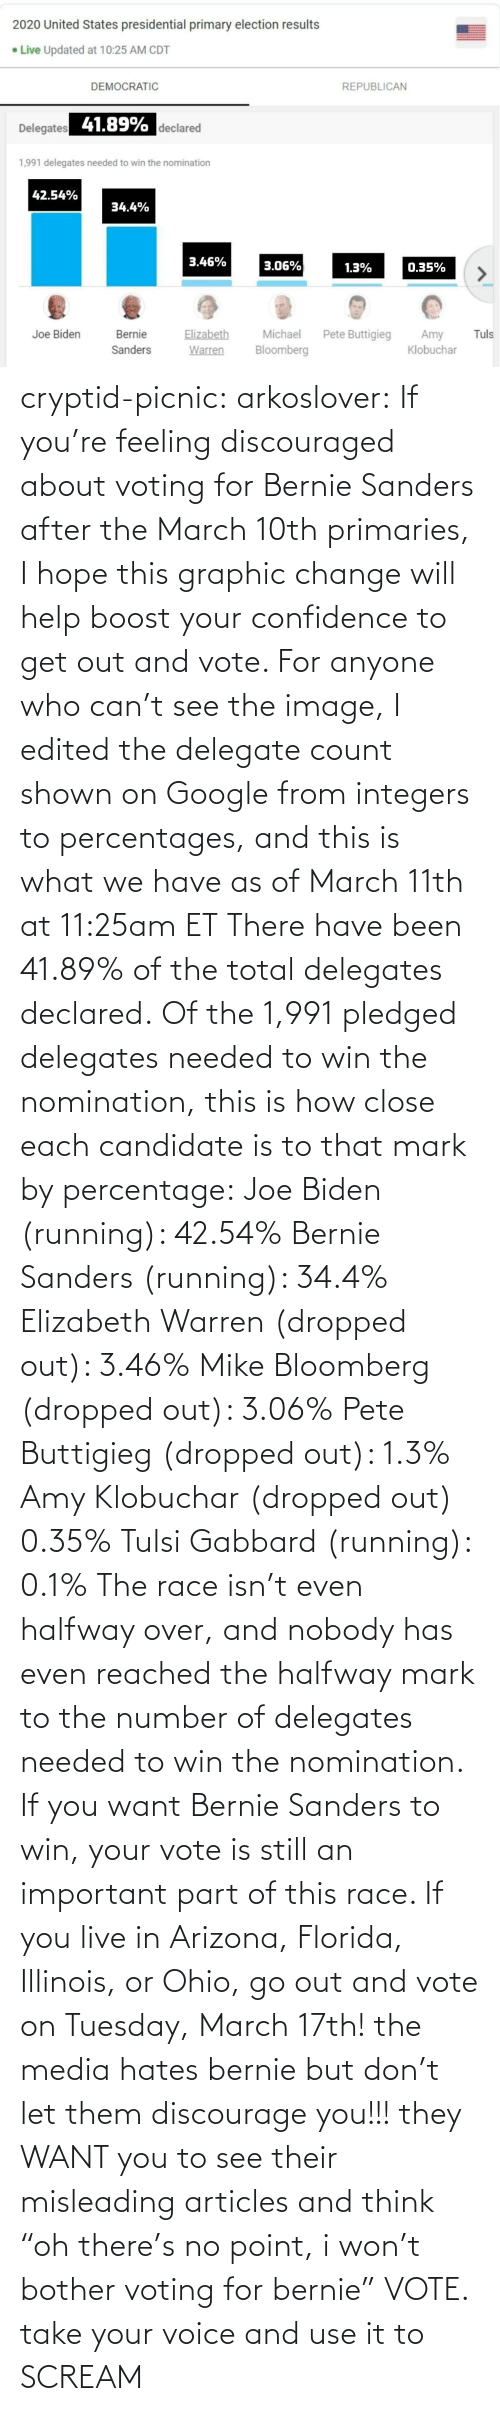 "total: cryptid-picnic: arkoslover:   If you're feeling discouraged about voting for Bernie Sanders after the March 10th primaries, I hope this graphic change will help boost your confidence to get out and vote. For anyone who can't see the image, I edited the delegate count shown on Google from integers to percentages, and this is what we have as of March 11th at 11:25am ET There have been 41.89% of the total delegates declared. Of the 1,991 pledged delegates needed to win the nomination, this is how close each candidate is to that mark by percentage: Joe Biden (running): 42.54% Bernie Sanders (running): 34.4% Elizabeth Warren (dropped out): 3.46% Mike Bloomberg (dropped out): 3.06% Pete Buttigieg (dropped out): 1.3% Amy Klobuchar (dropped out) 0.35% Tulsi Gabbard (running): 0.1% The race isn't even halfway over, and nobody has even reached the halfway mark to the number of delegates needed to win the nomination. If you want Bernie Sanders to win, your vote is still an important part of this race. If you live in Arizona, Florida, Illinois, or Ohio, go out and vote on Tuesday, March 17th!    the media hates bernie but don't let them discourage you!!! they WANT you to see their misleading articles and think ""oh there's no point, i won't bother voting for bernie"" VOTE. take your voice and use it to SCREAM"